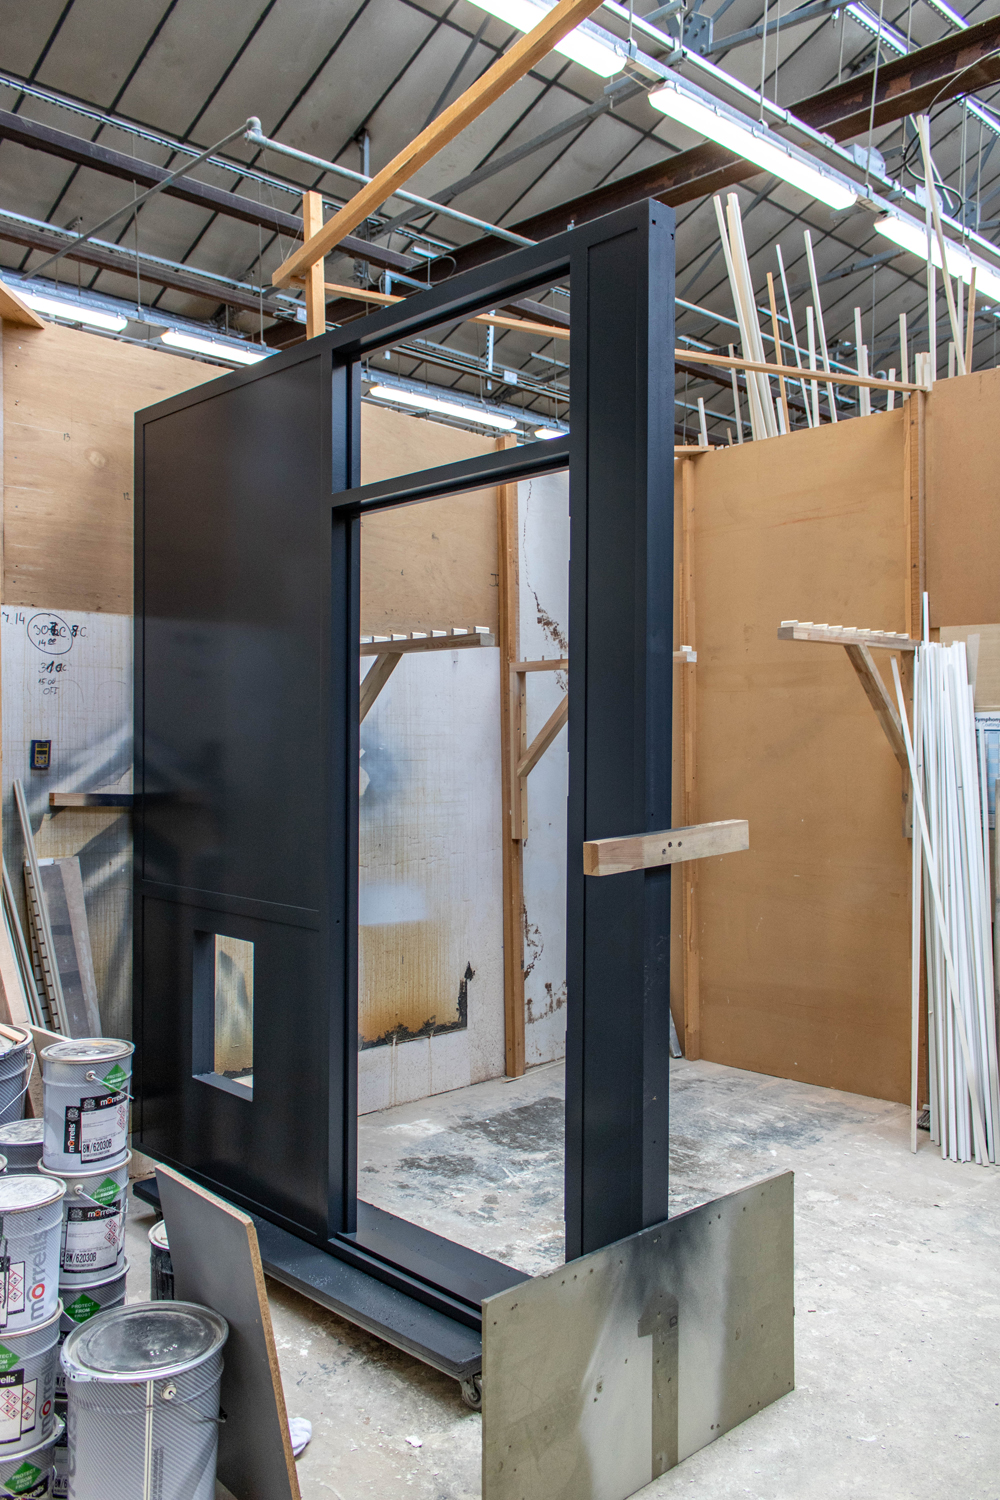 black door frame in k&d joinery workshop london